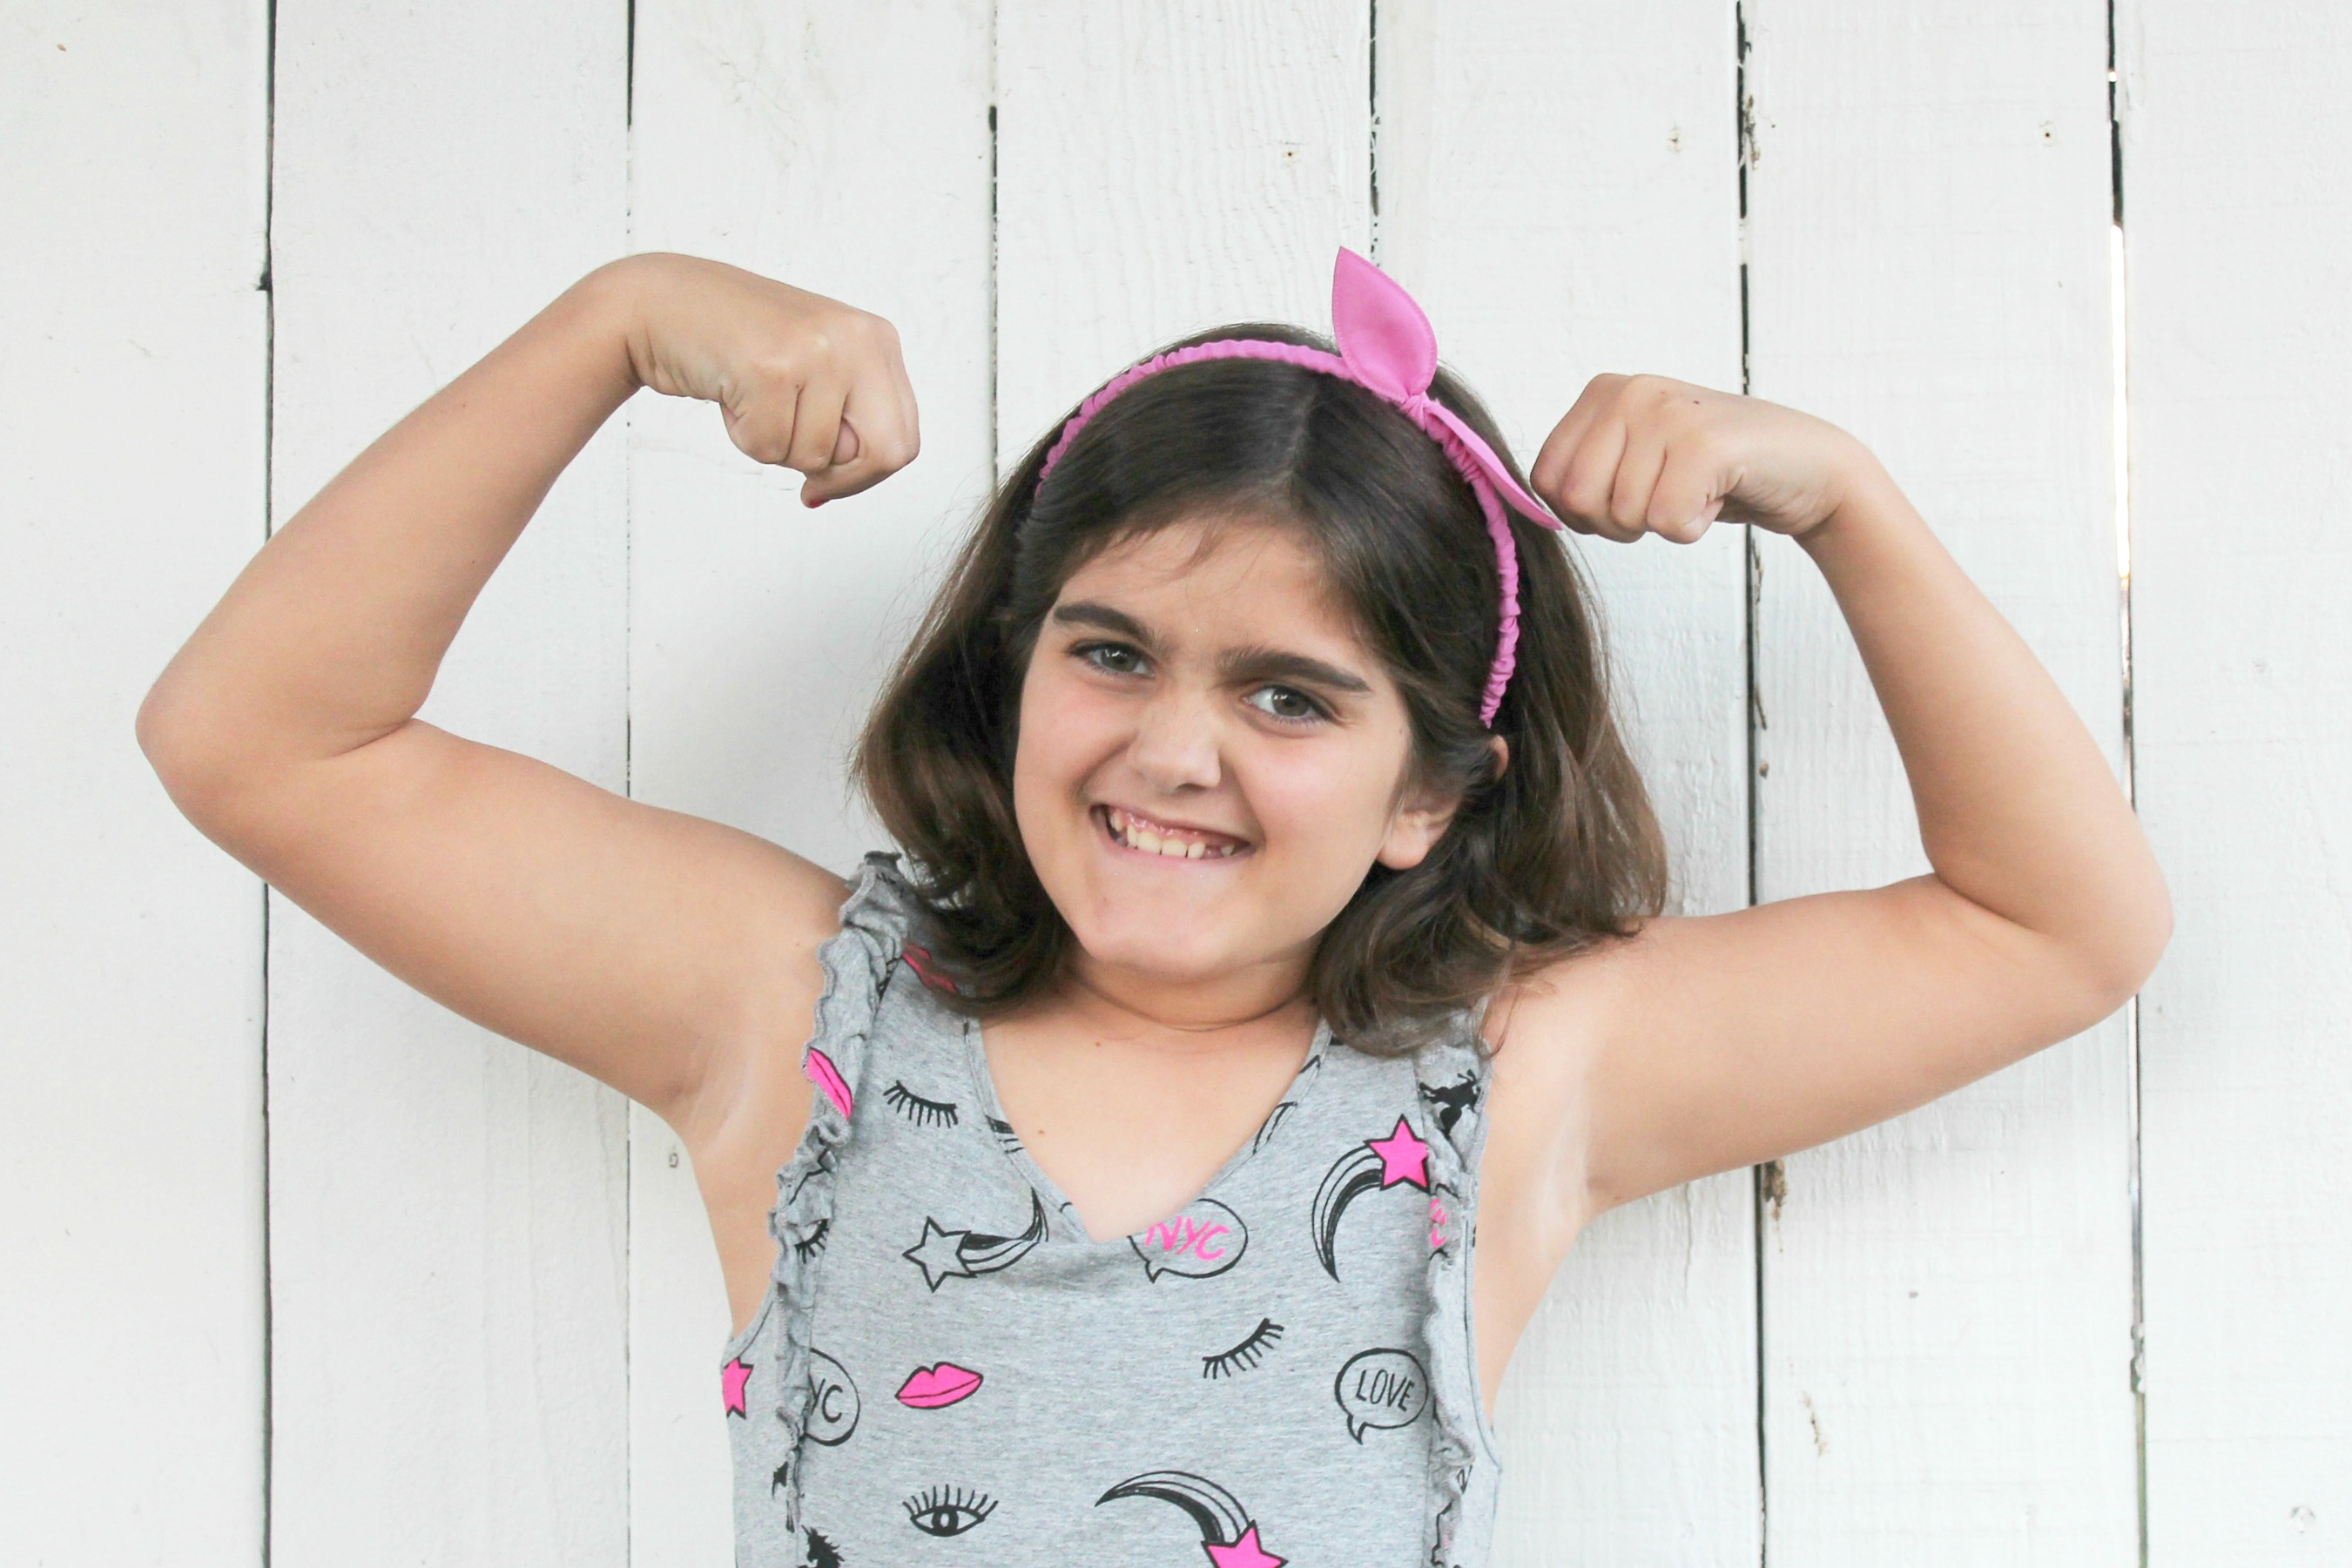 My daughter is growing up fast. In fact, she just had another birthday. This is what I want my daughter to know about confidence.